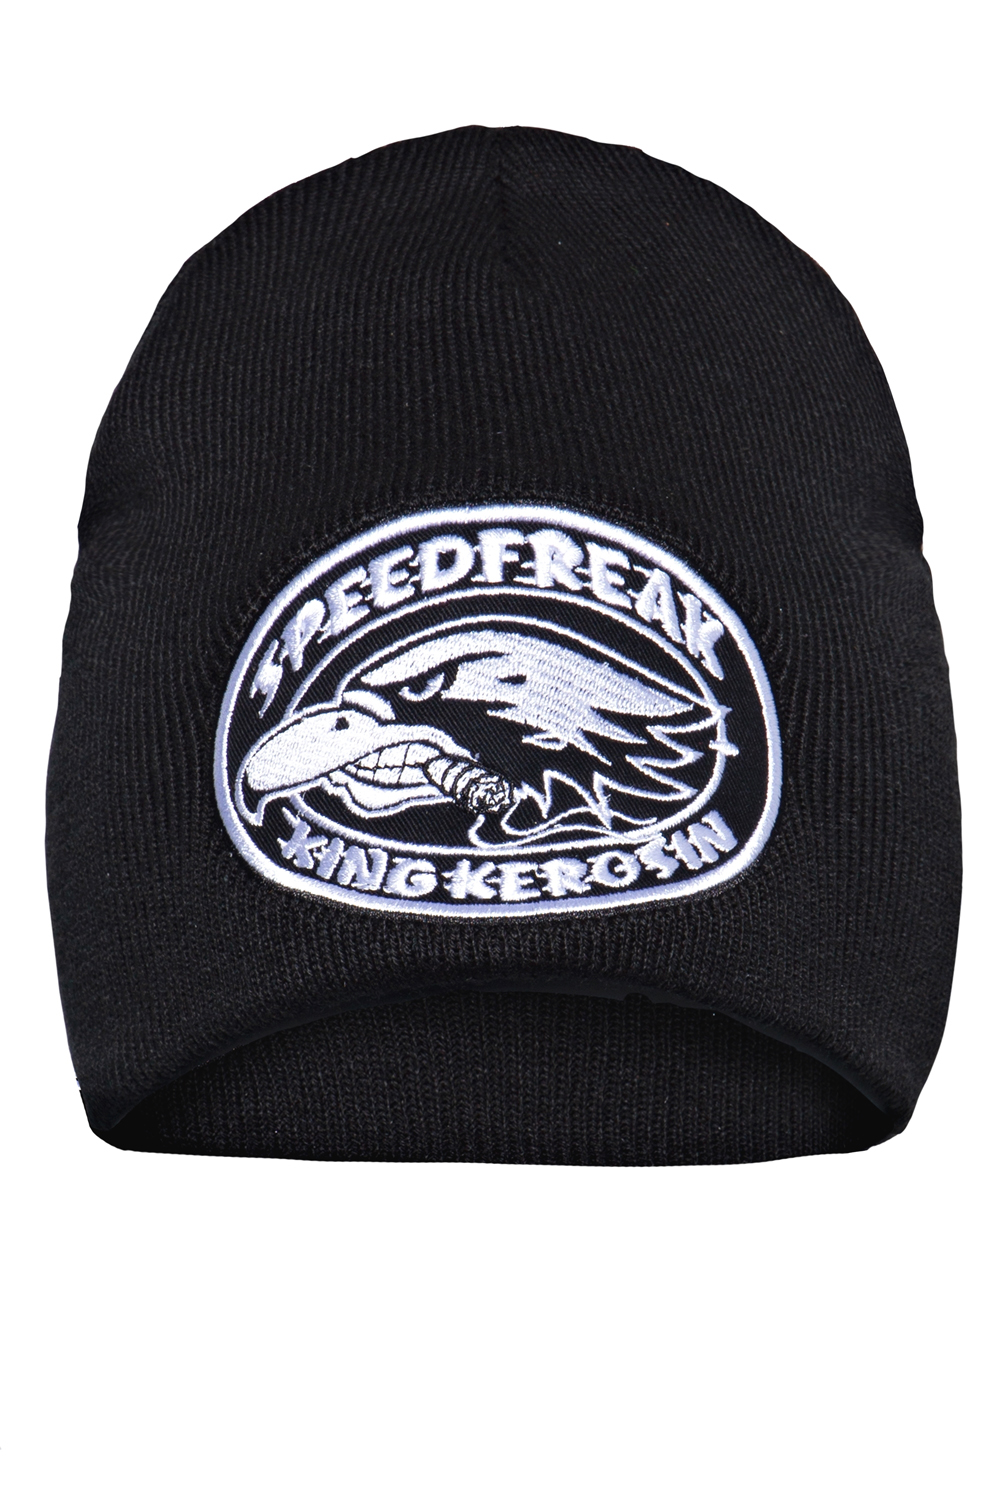 King Kerosin Mütze Strickmütze Stickerei Speedfreak Rockabilly Biker Beanie